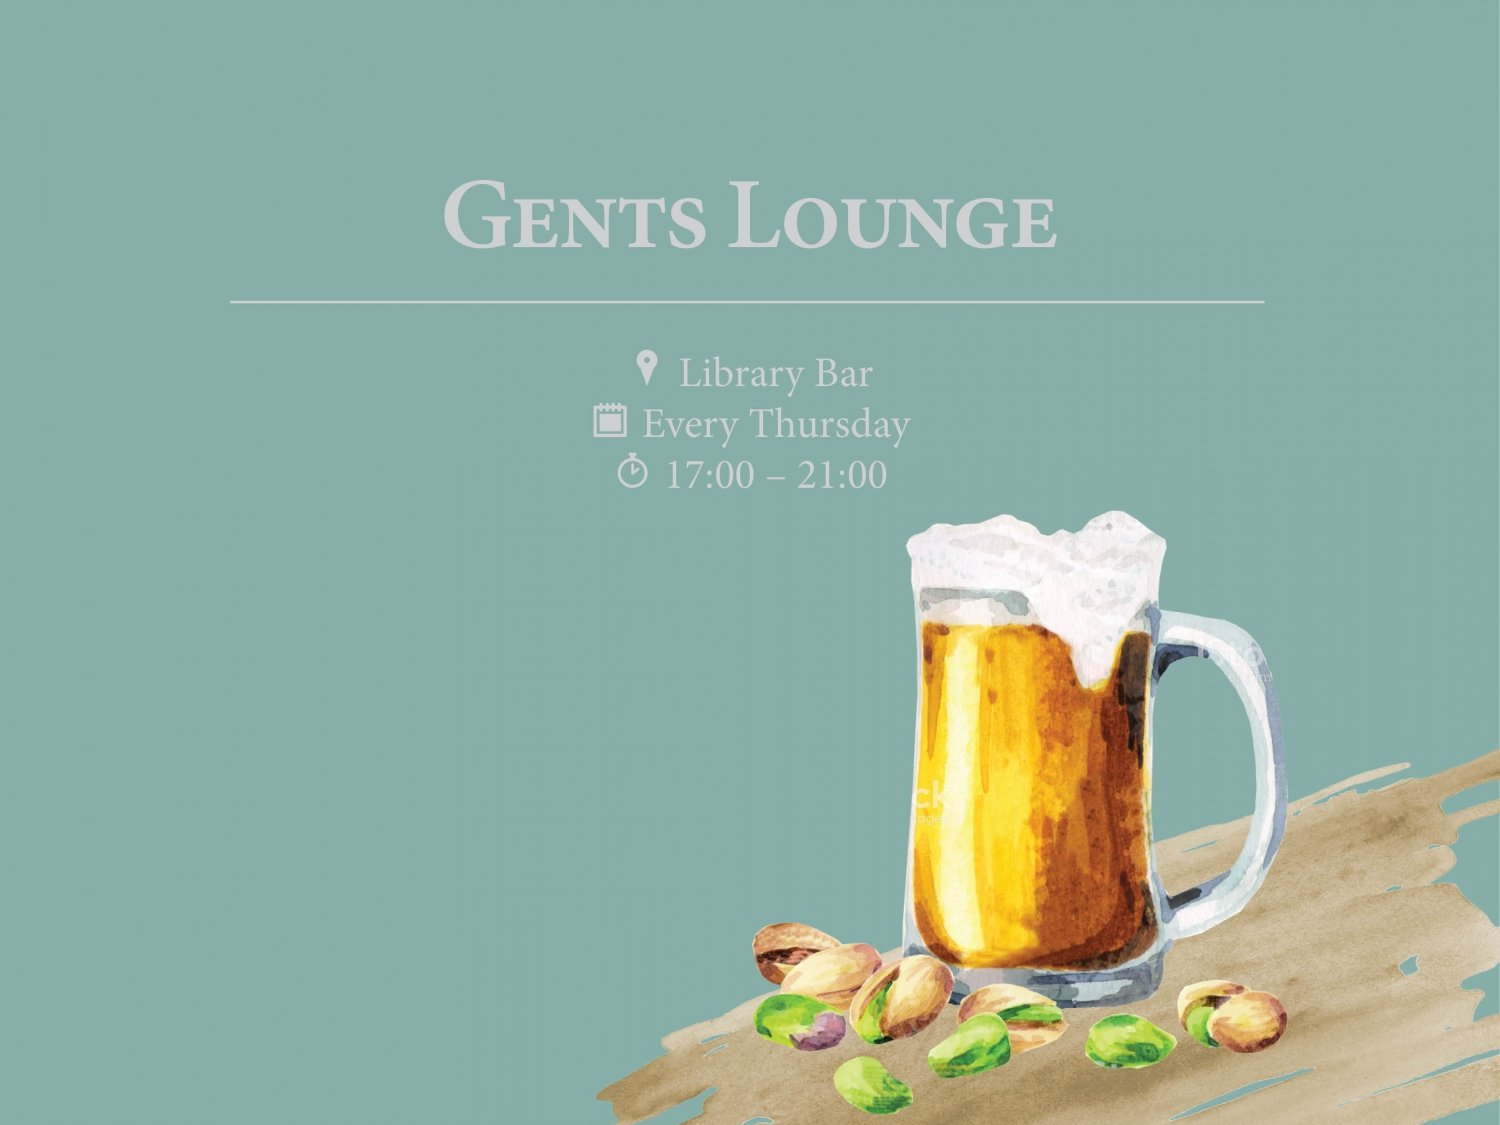 Gents Lounge at Library Bar